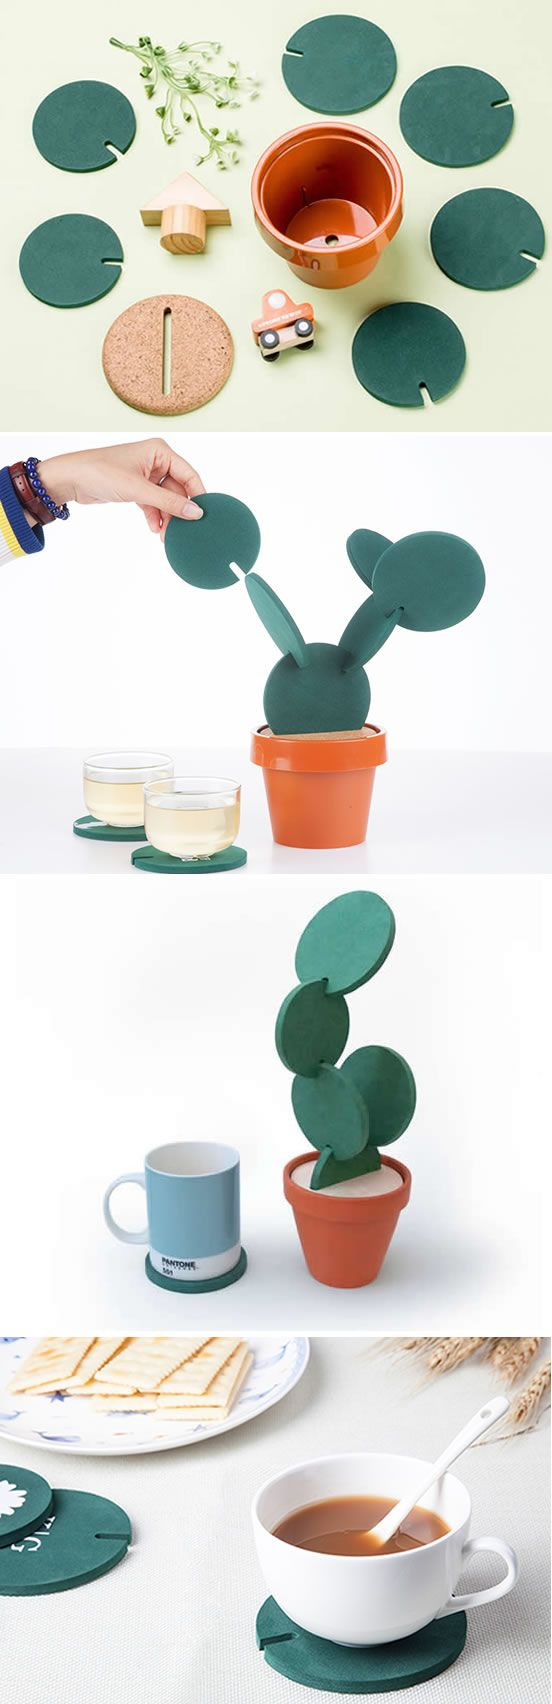 Cactus Coasters Set by Designer Clive Roddy on Etsy is a clever way to store you...